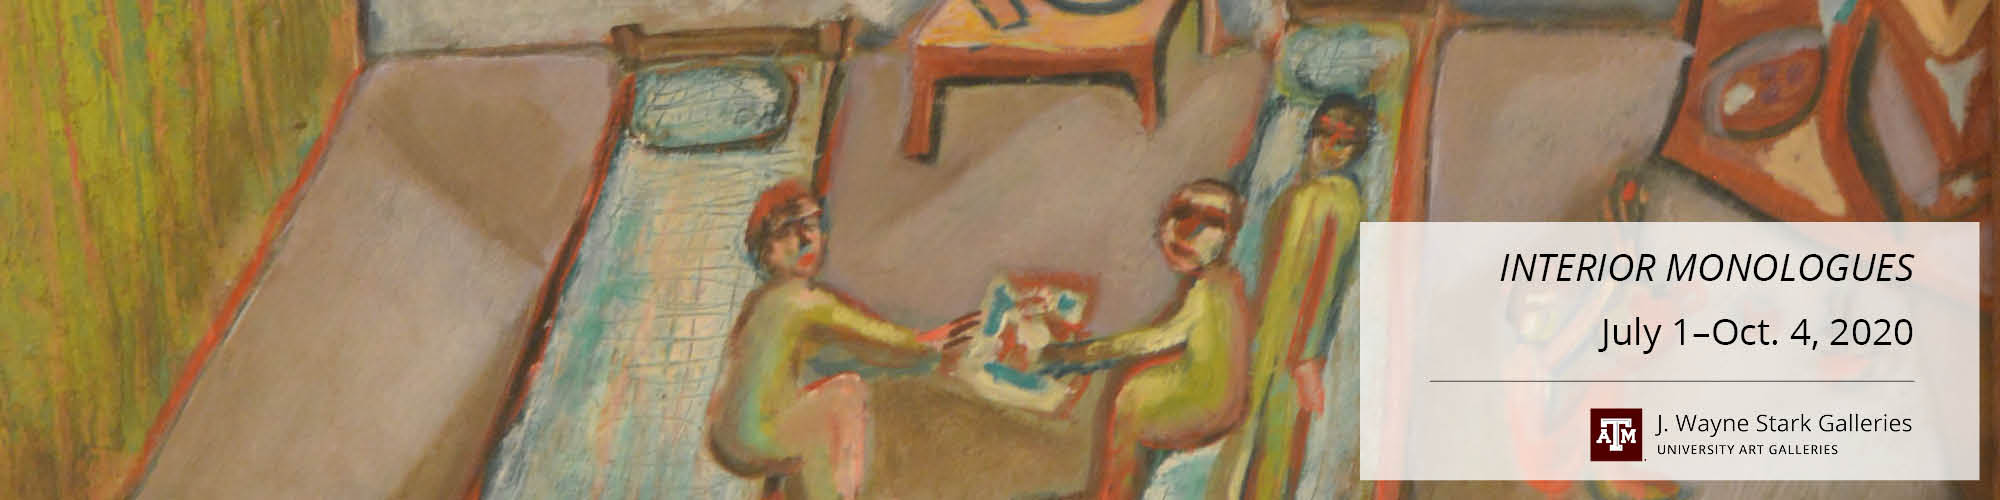 Painting. View of an interior room. We see a simple style of drawing two human figures sitting on beds opposite each other. They are passing a piece of paper between them. The paper has colorful scribbles. Another person is lying down on the bed on the right.